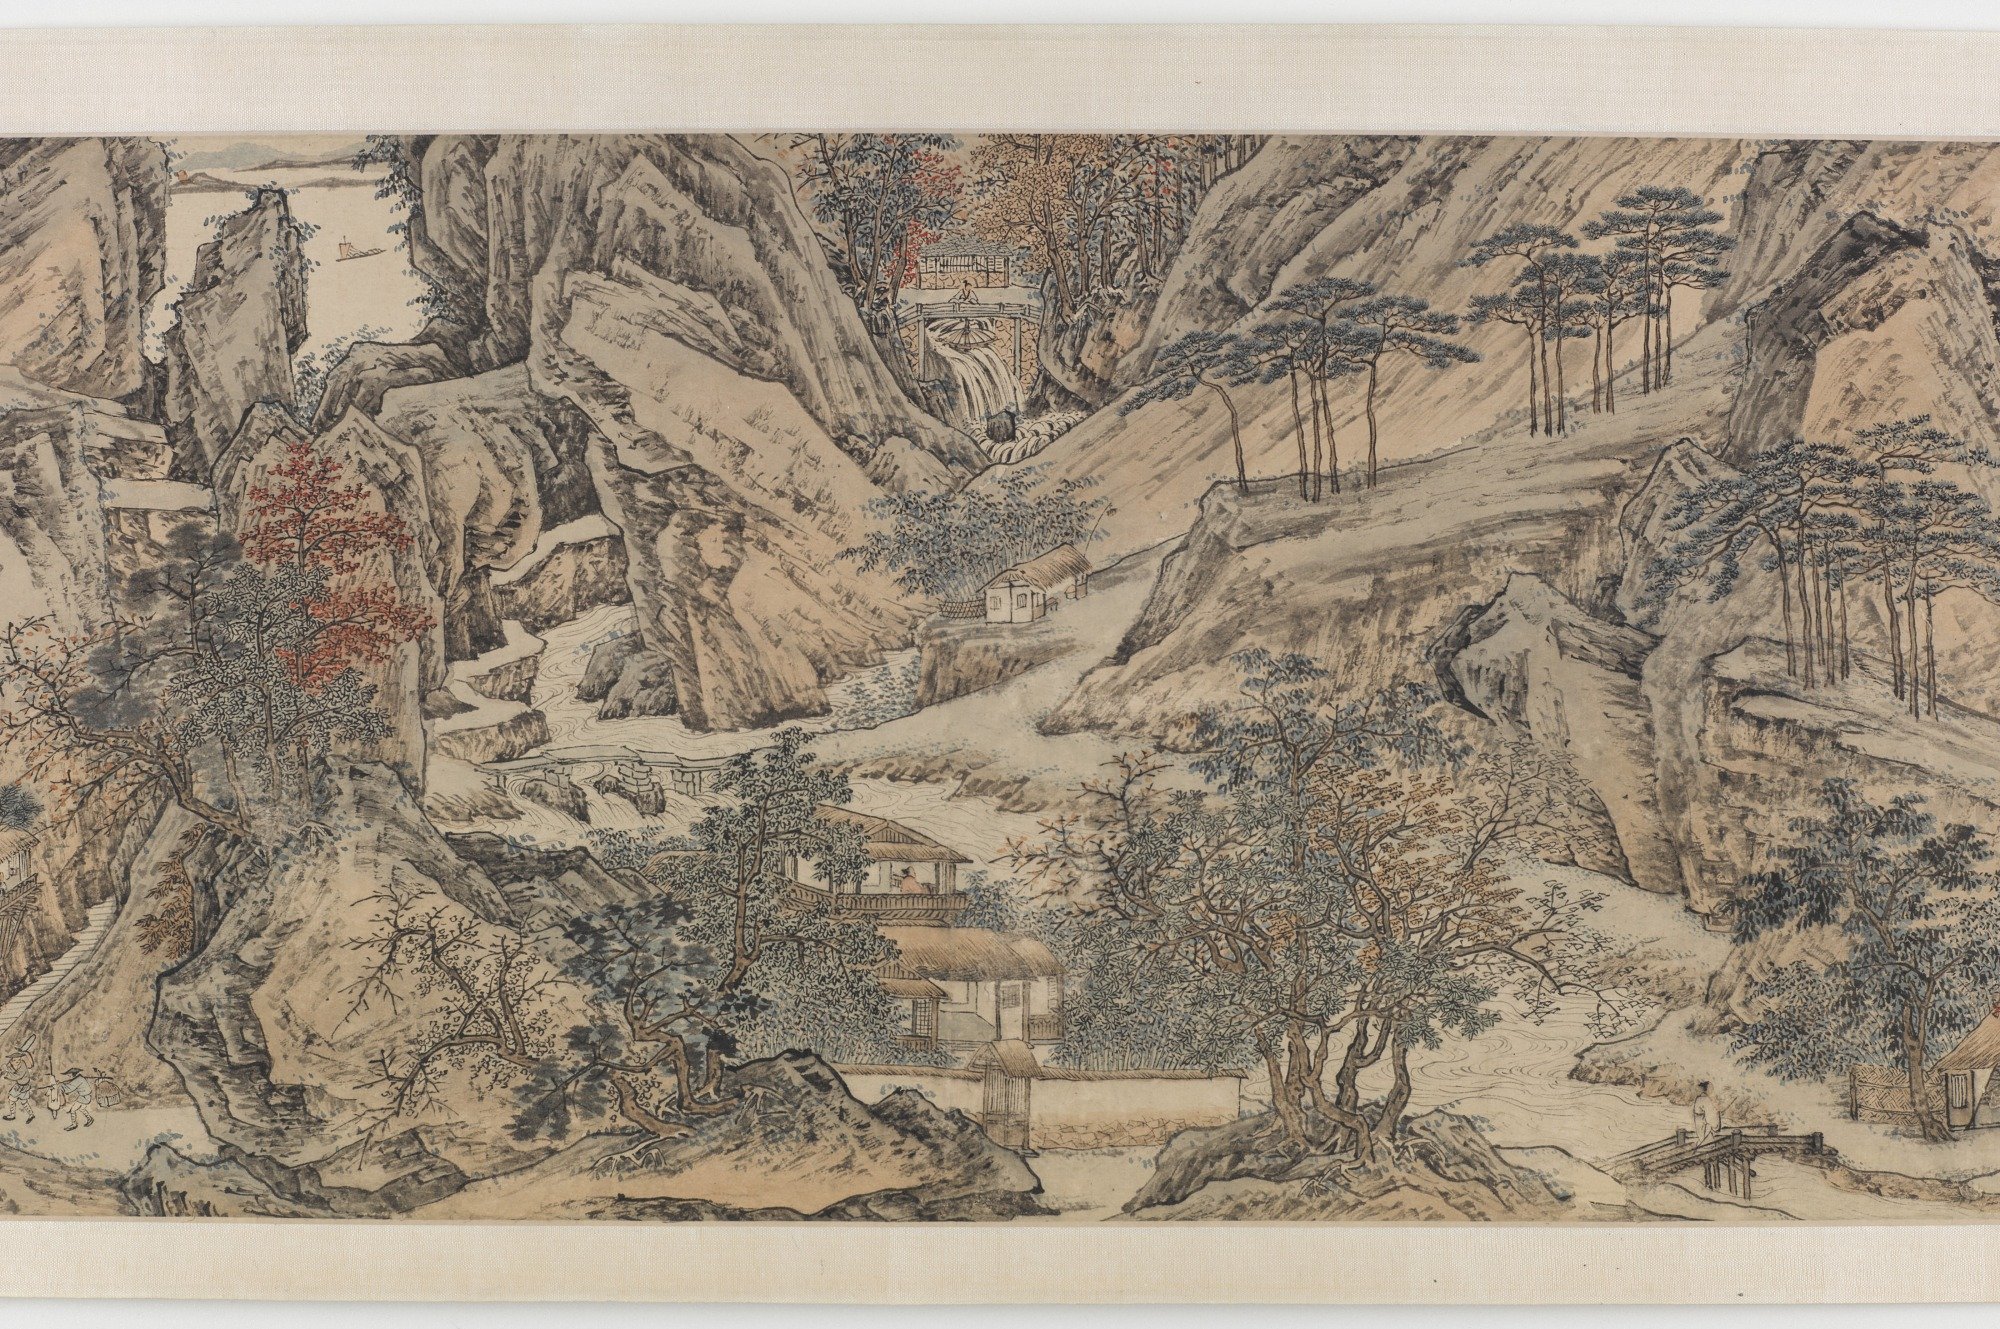 section 7: Landscape in the Style of Li Tang